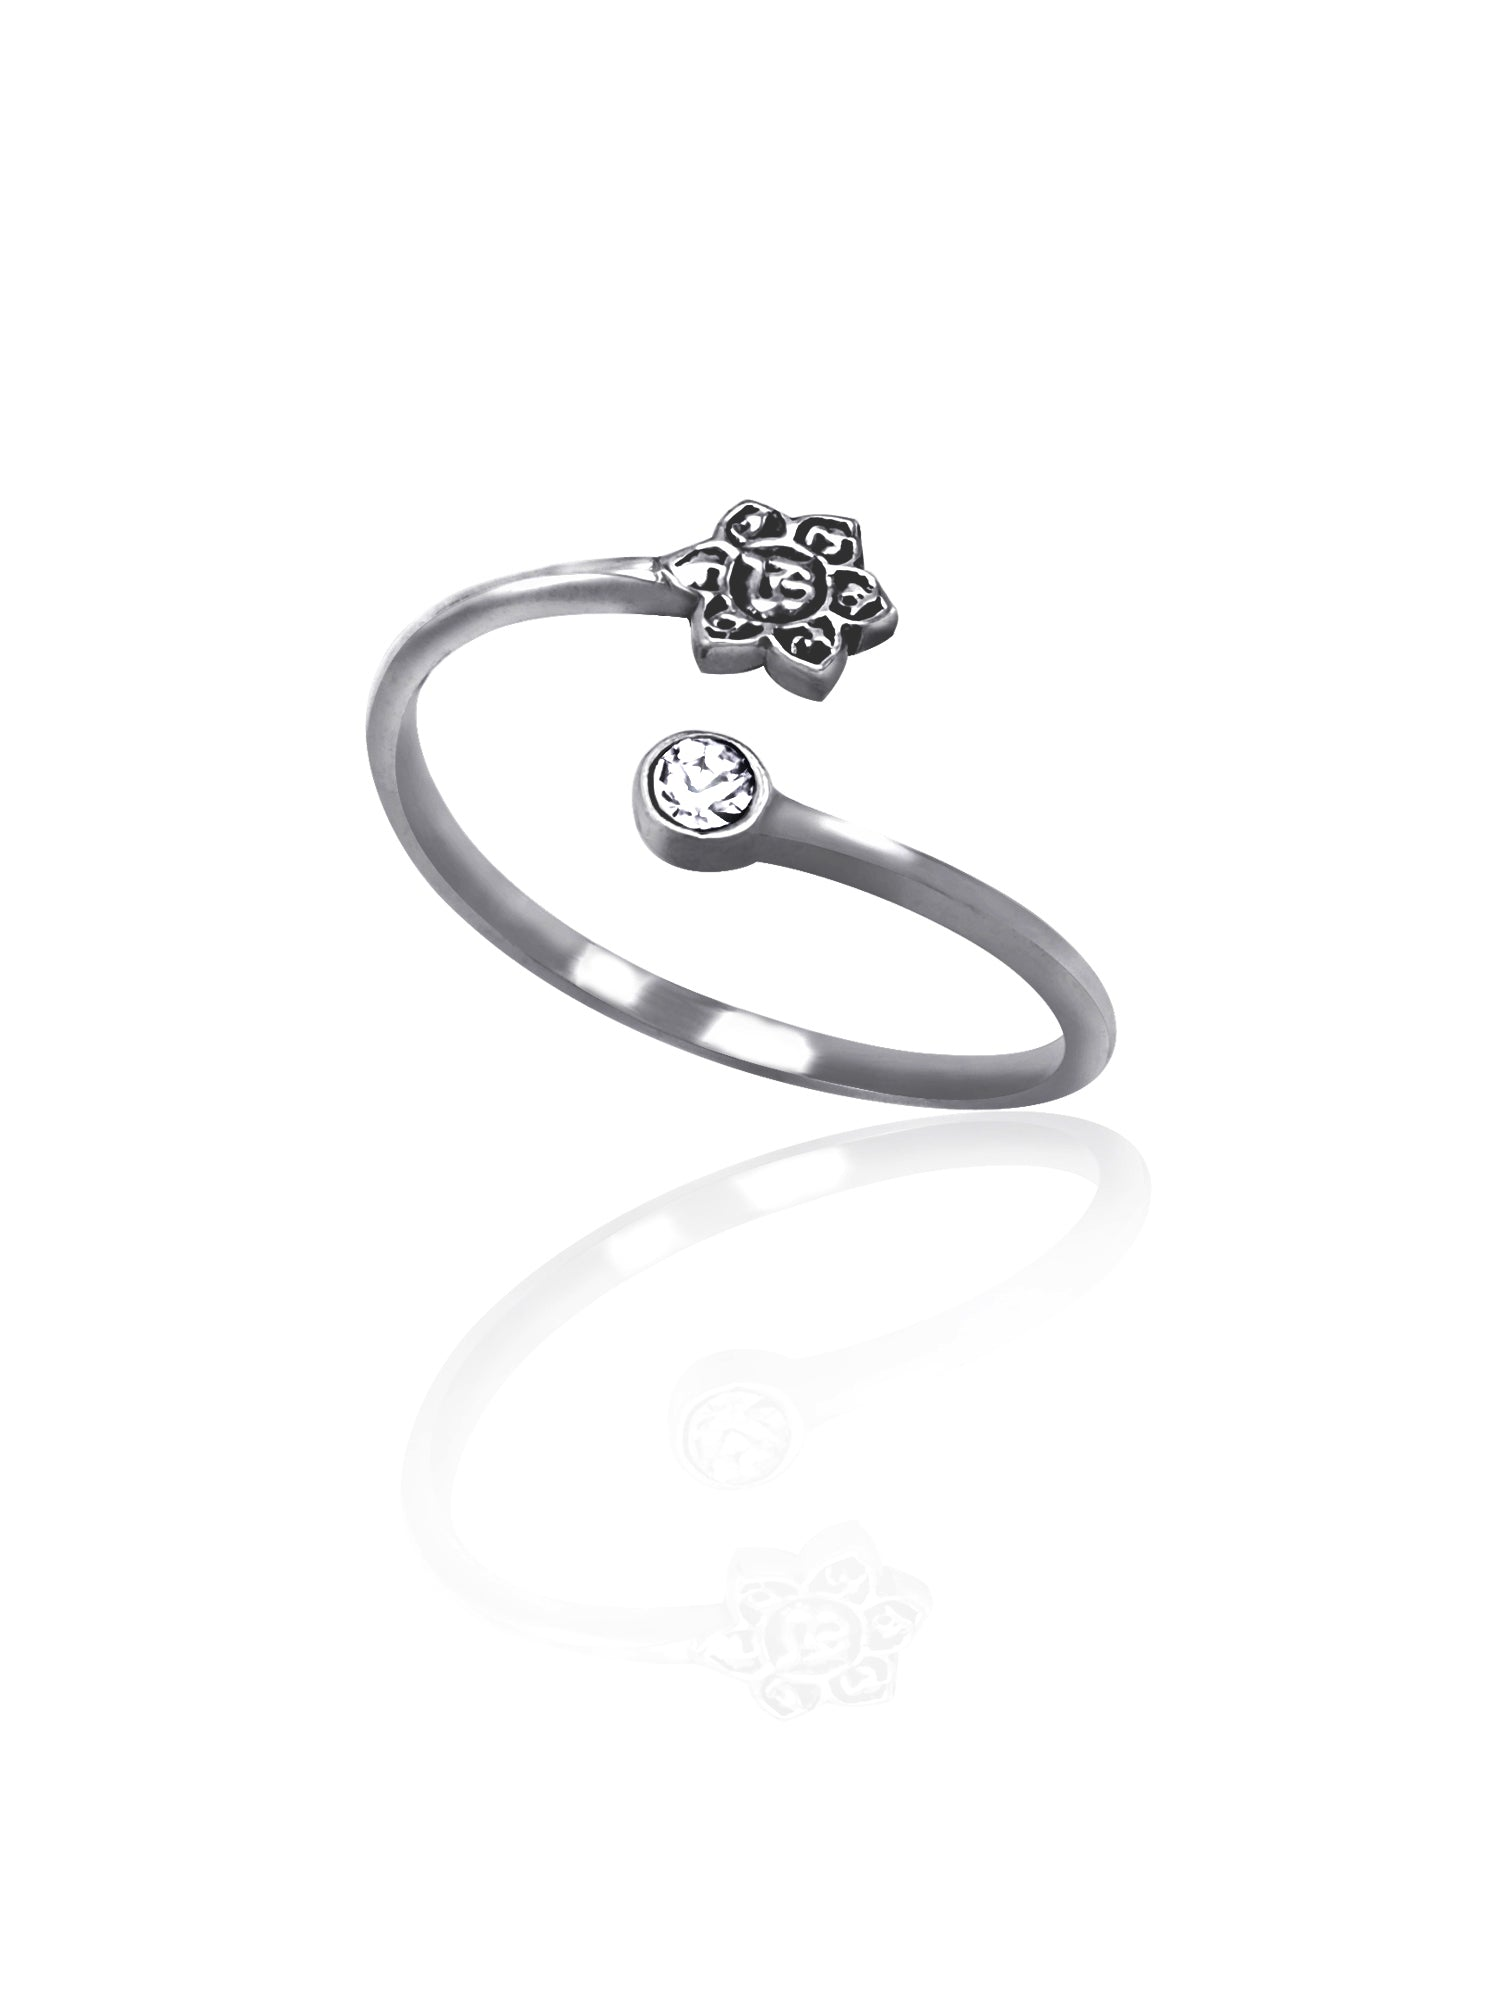 Hannah Lotus Flower Ring, Yoga Gifts, Om Rings for Women